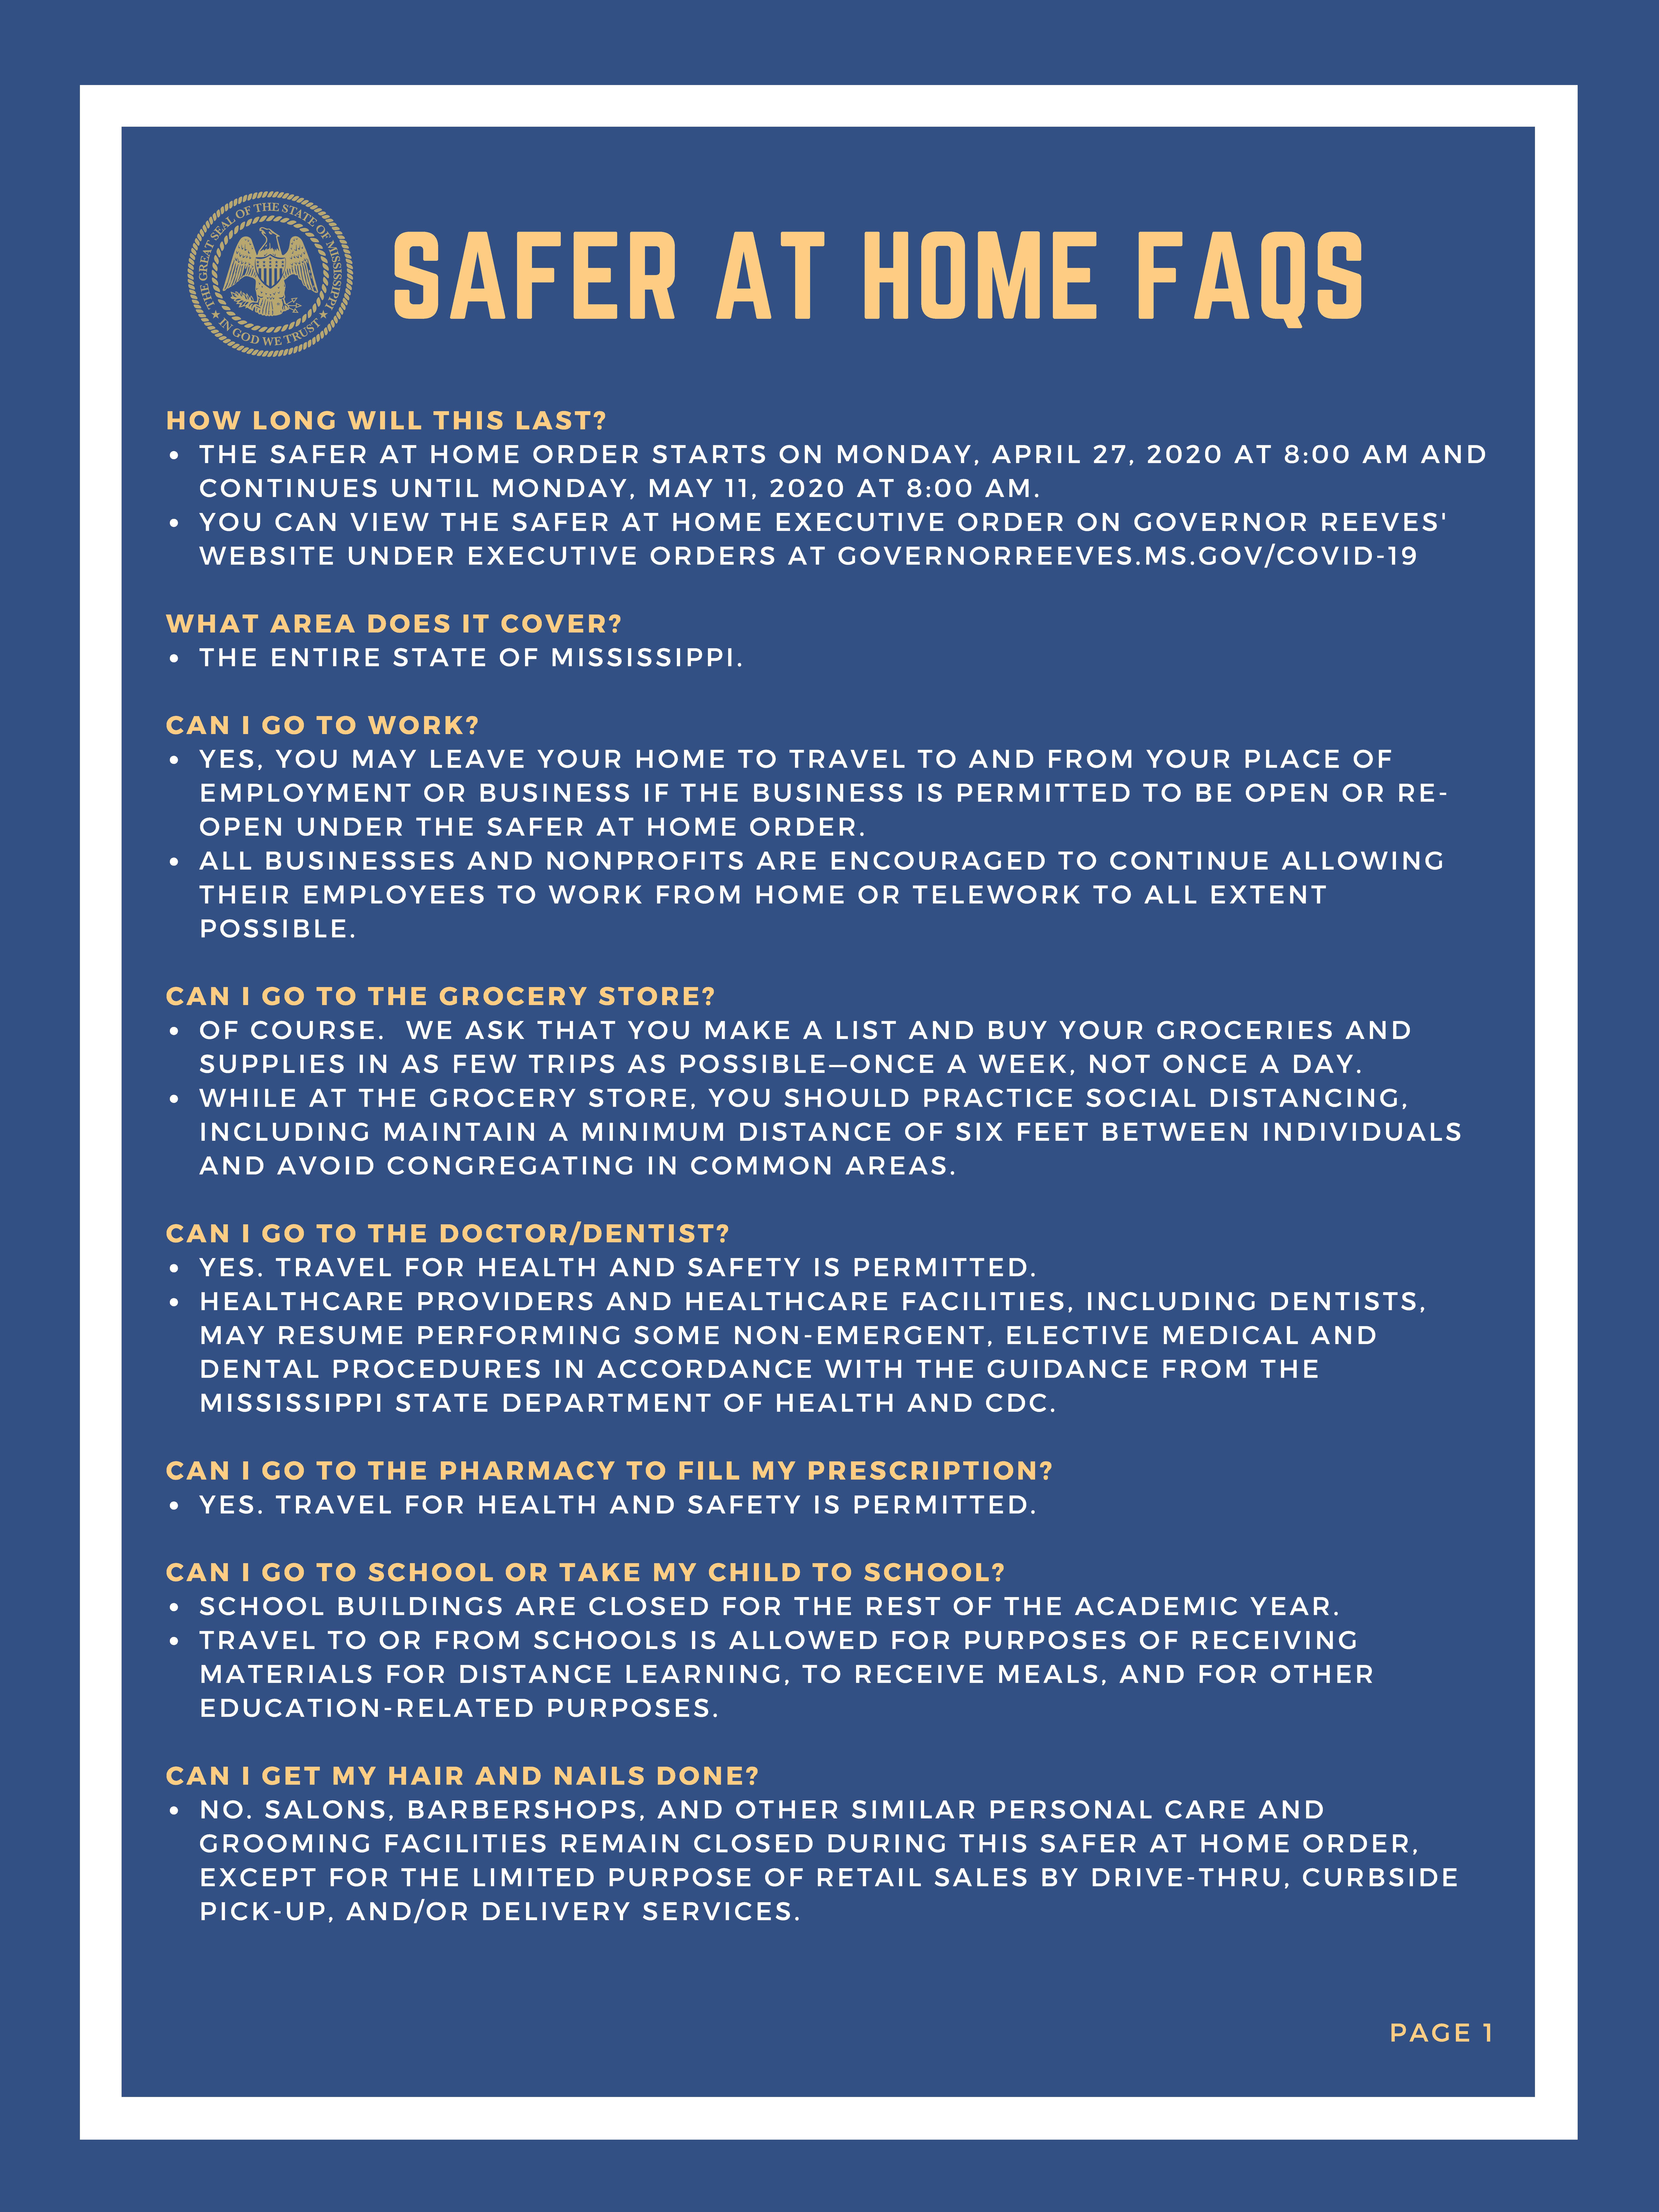 Safer at Home FAQs_Page_1.jpg